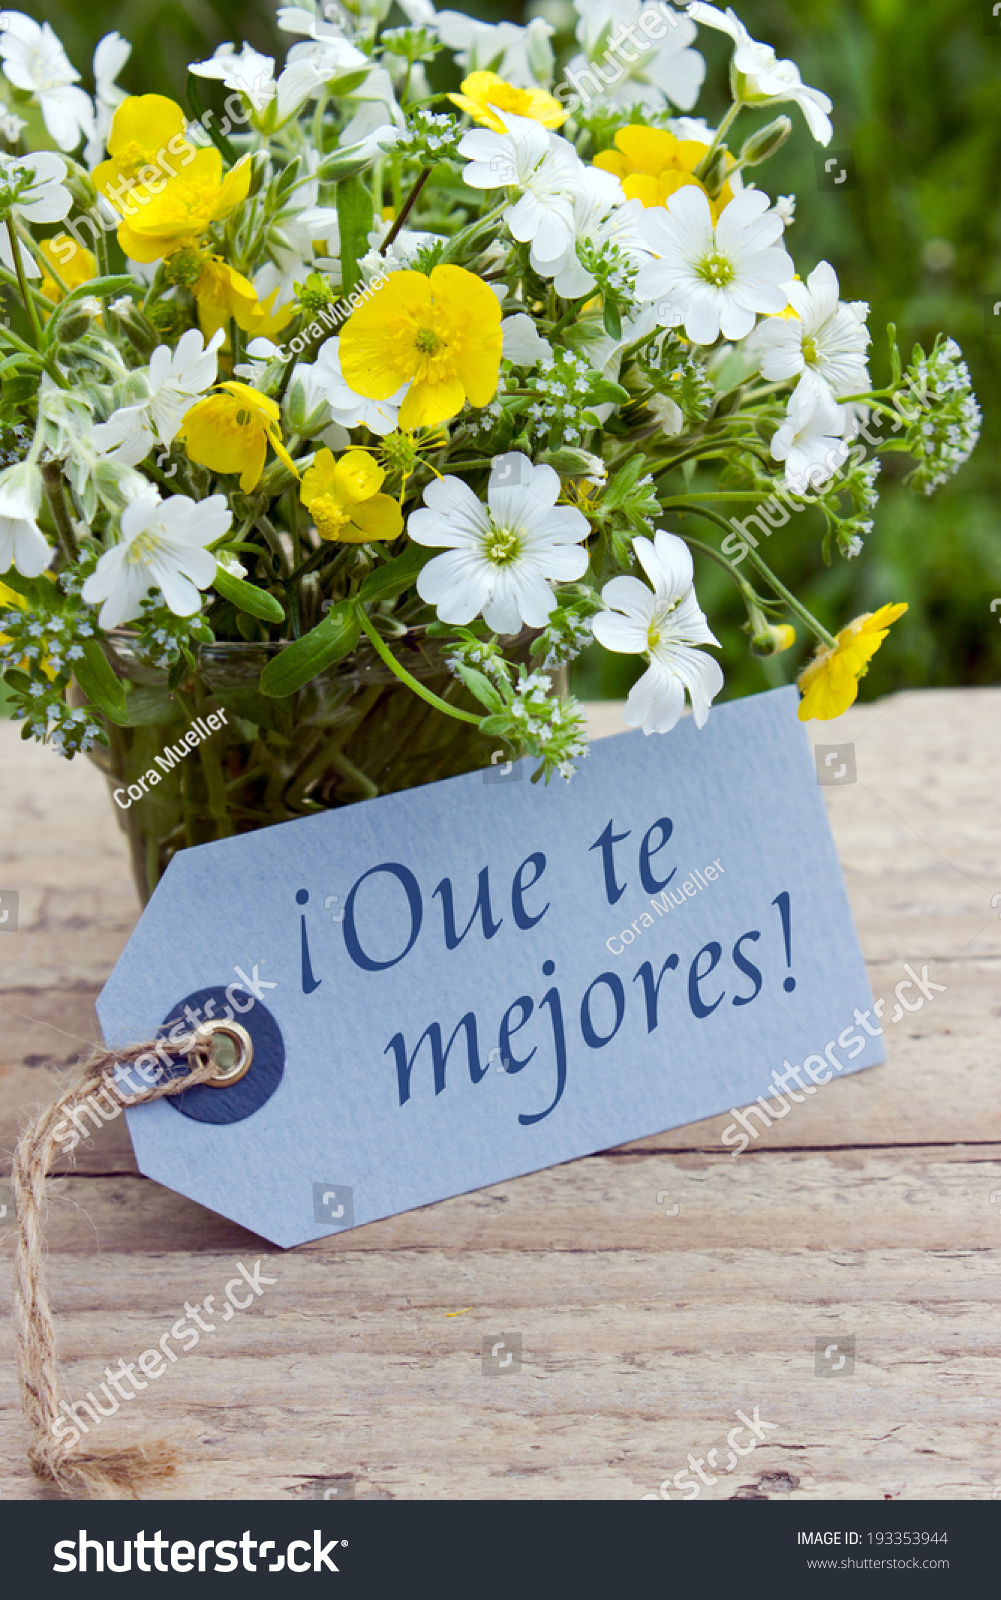 Spanish get well card wildflowers may you stock photo royalty free spanish get well card with wildflowersmay you feel better soonspanish izmirmasajfo